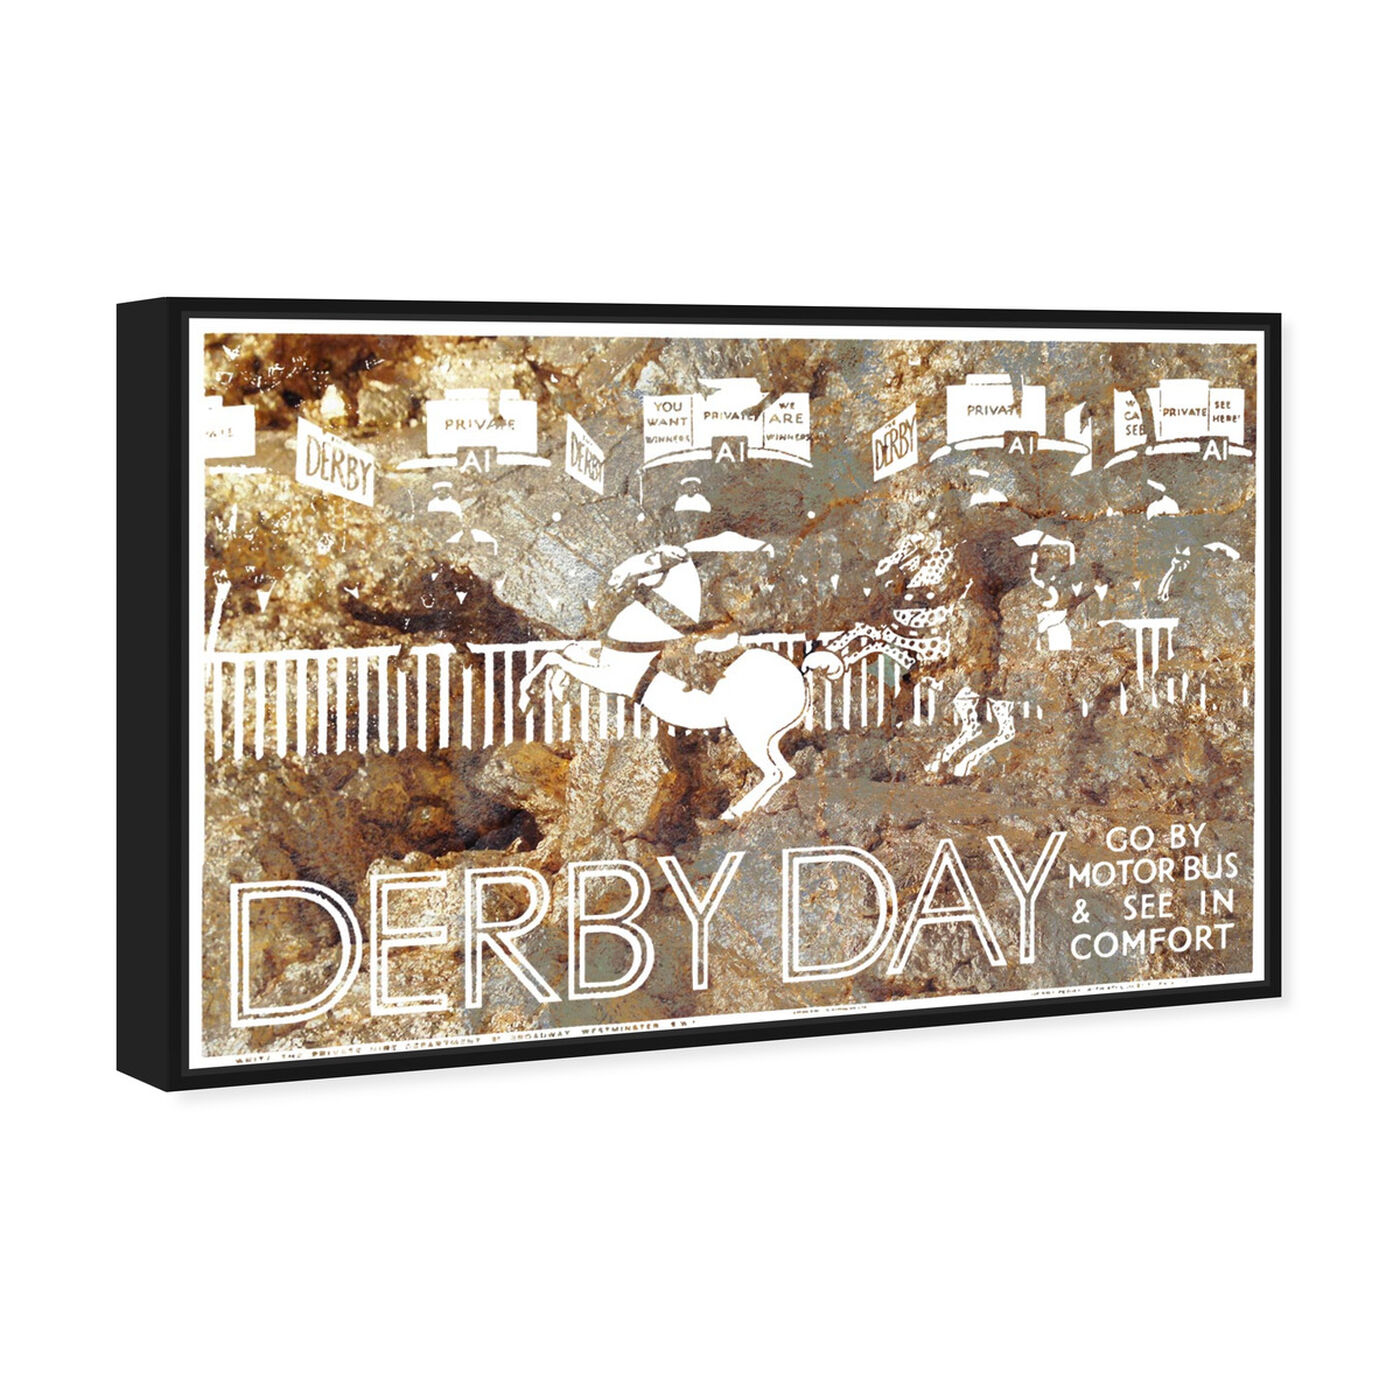 Angled view of Come See The Derby featuring sports and teams and equestrian art.